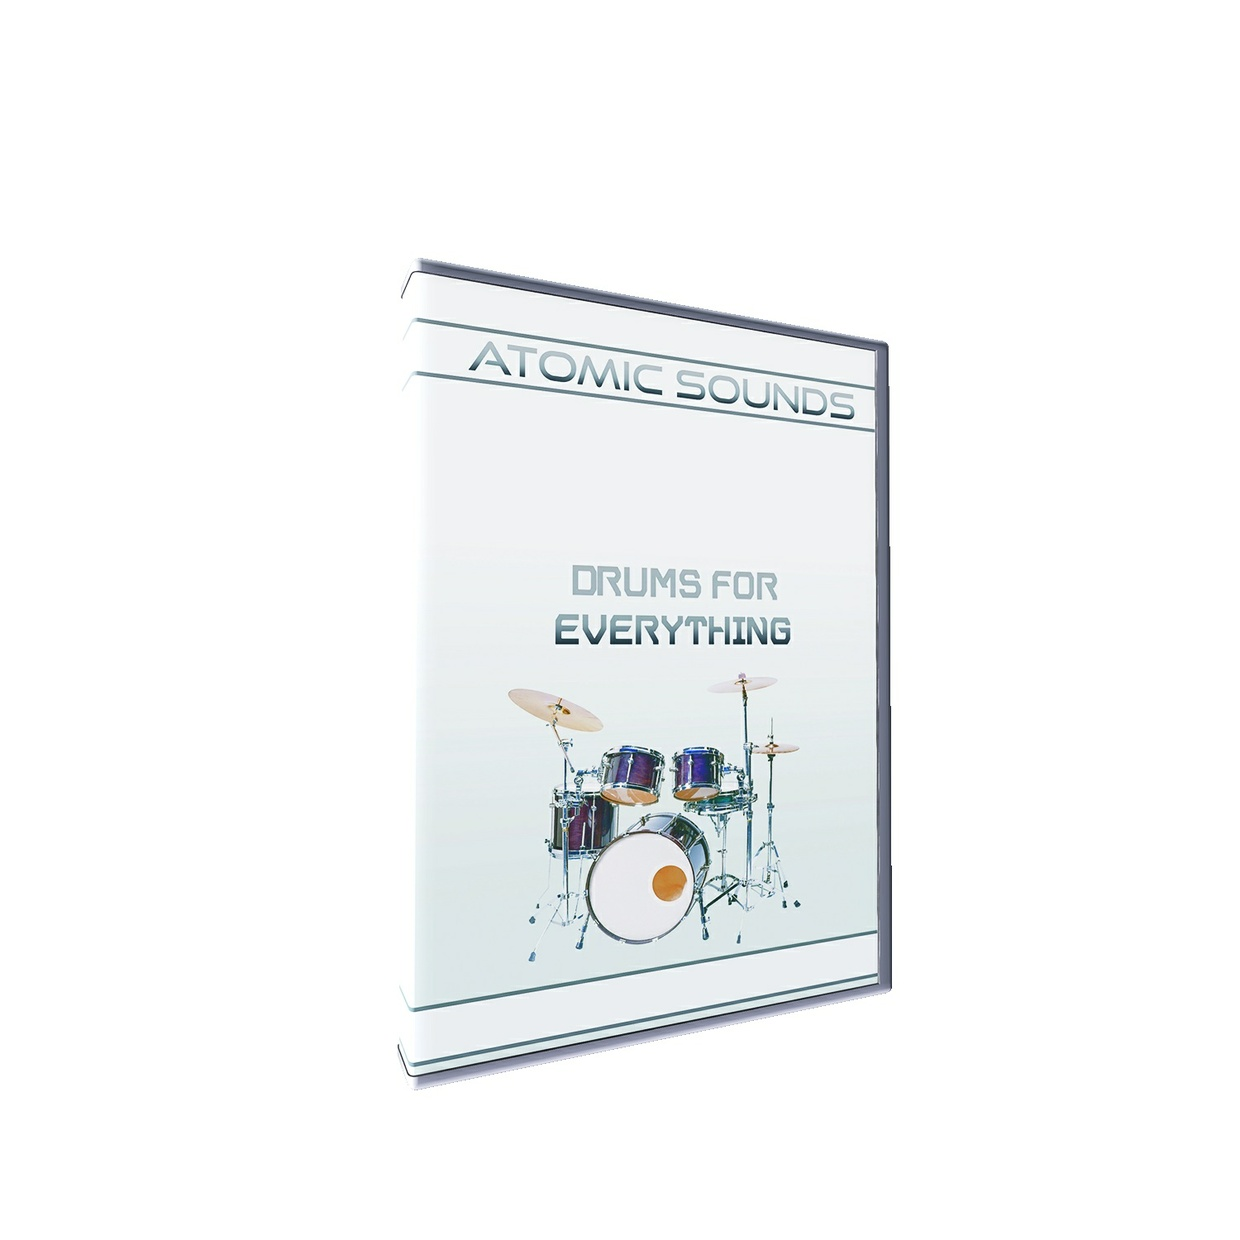 Atomic Sounds - Drums For Everything